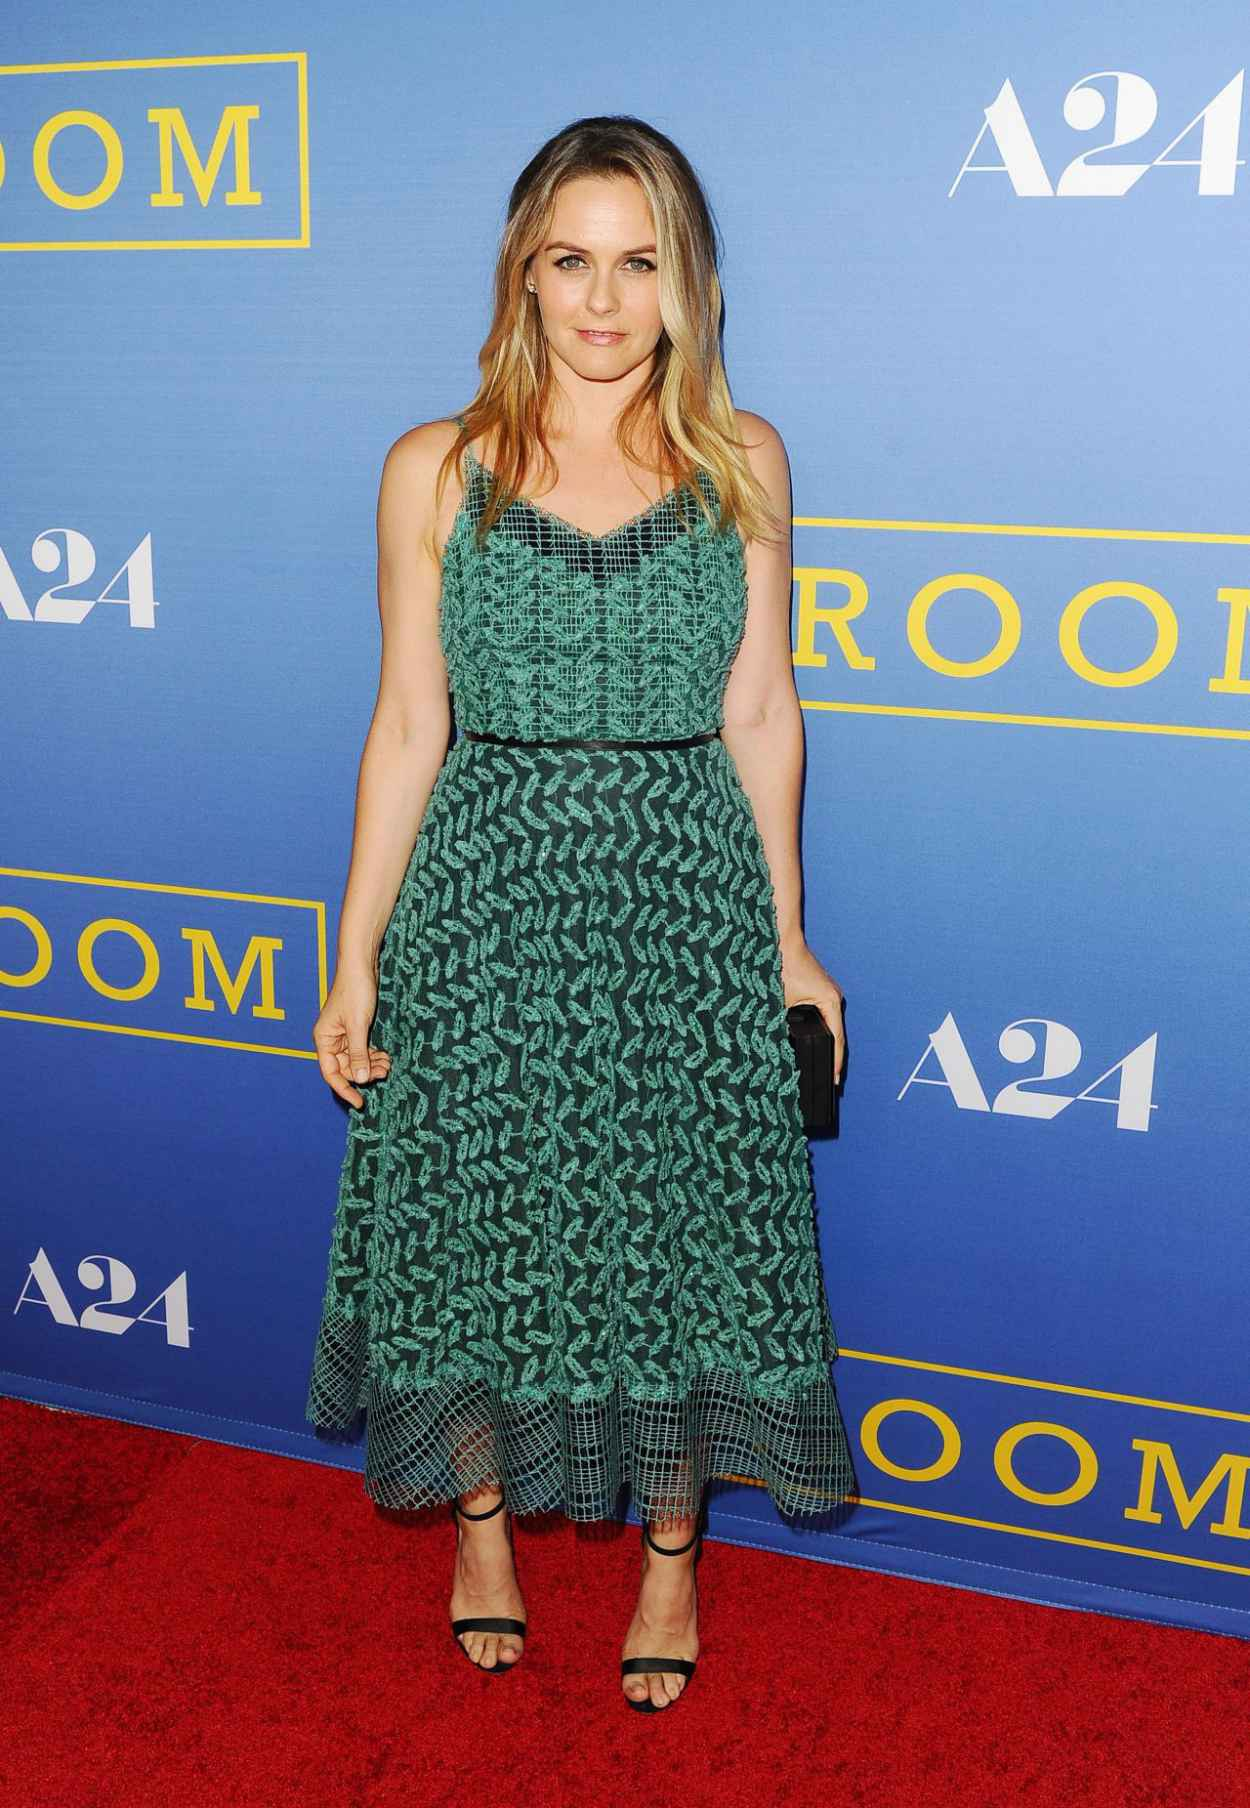 Alicia Silverstone - Room Premiere in Los Angeles-5